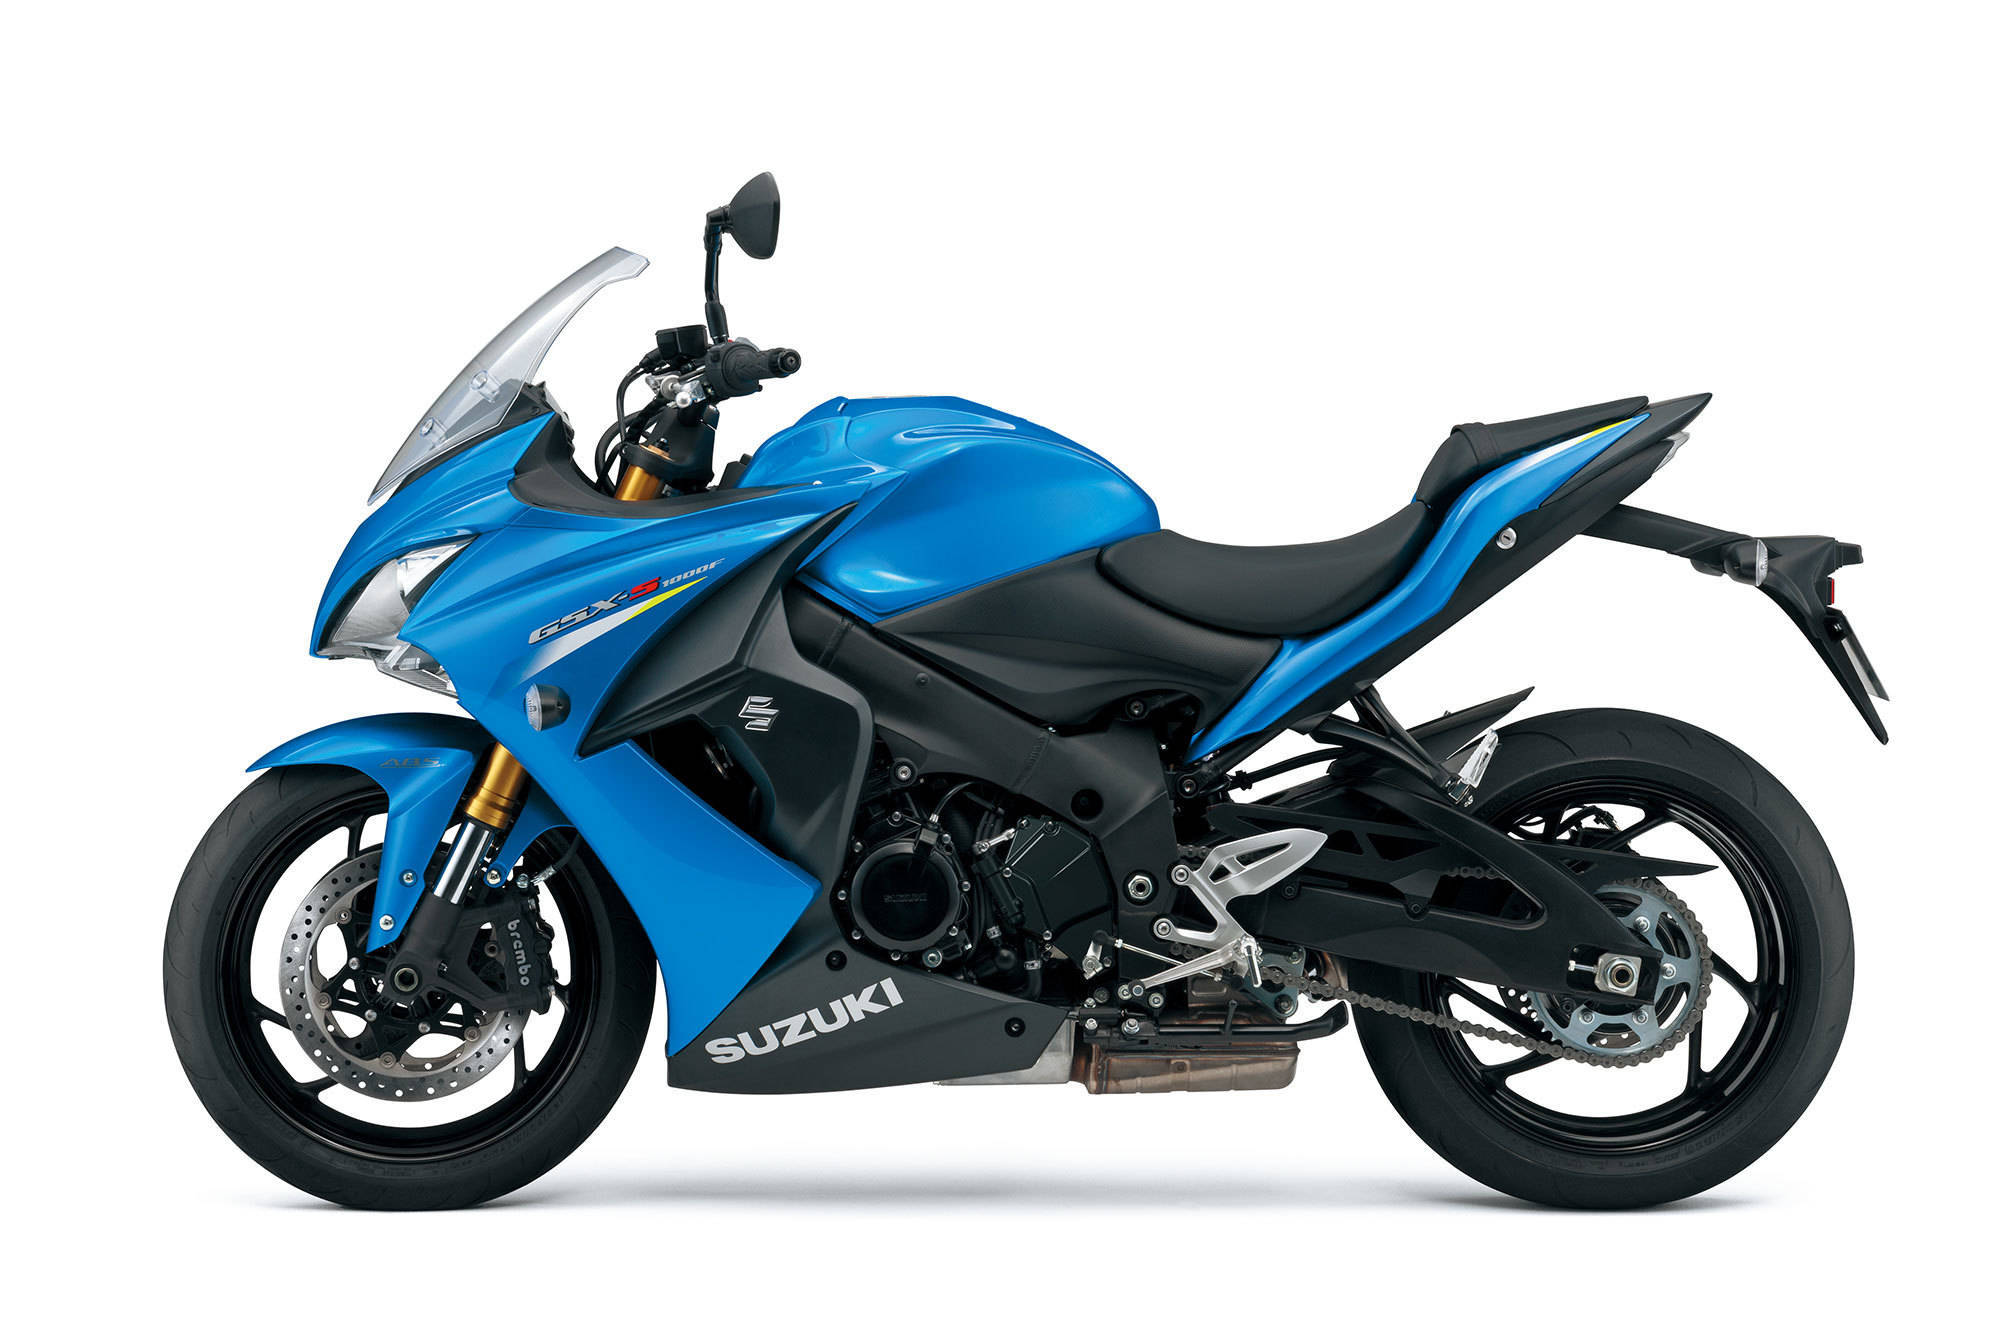 Top 5 150cc 160cc motorcycles in the country indian cars bikes - Sports Suzuki Gsx S1000f Sports Bike